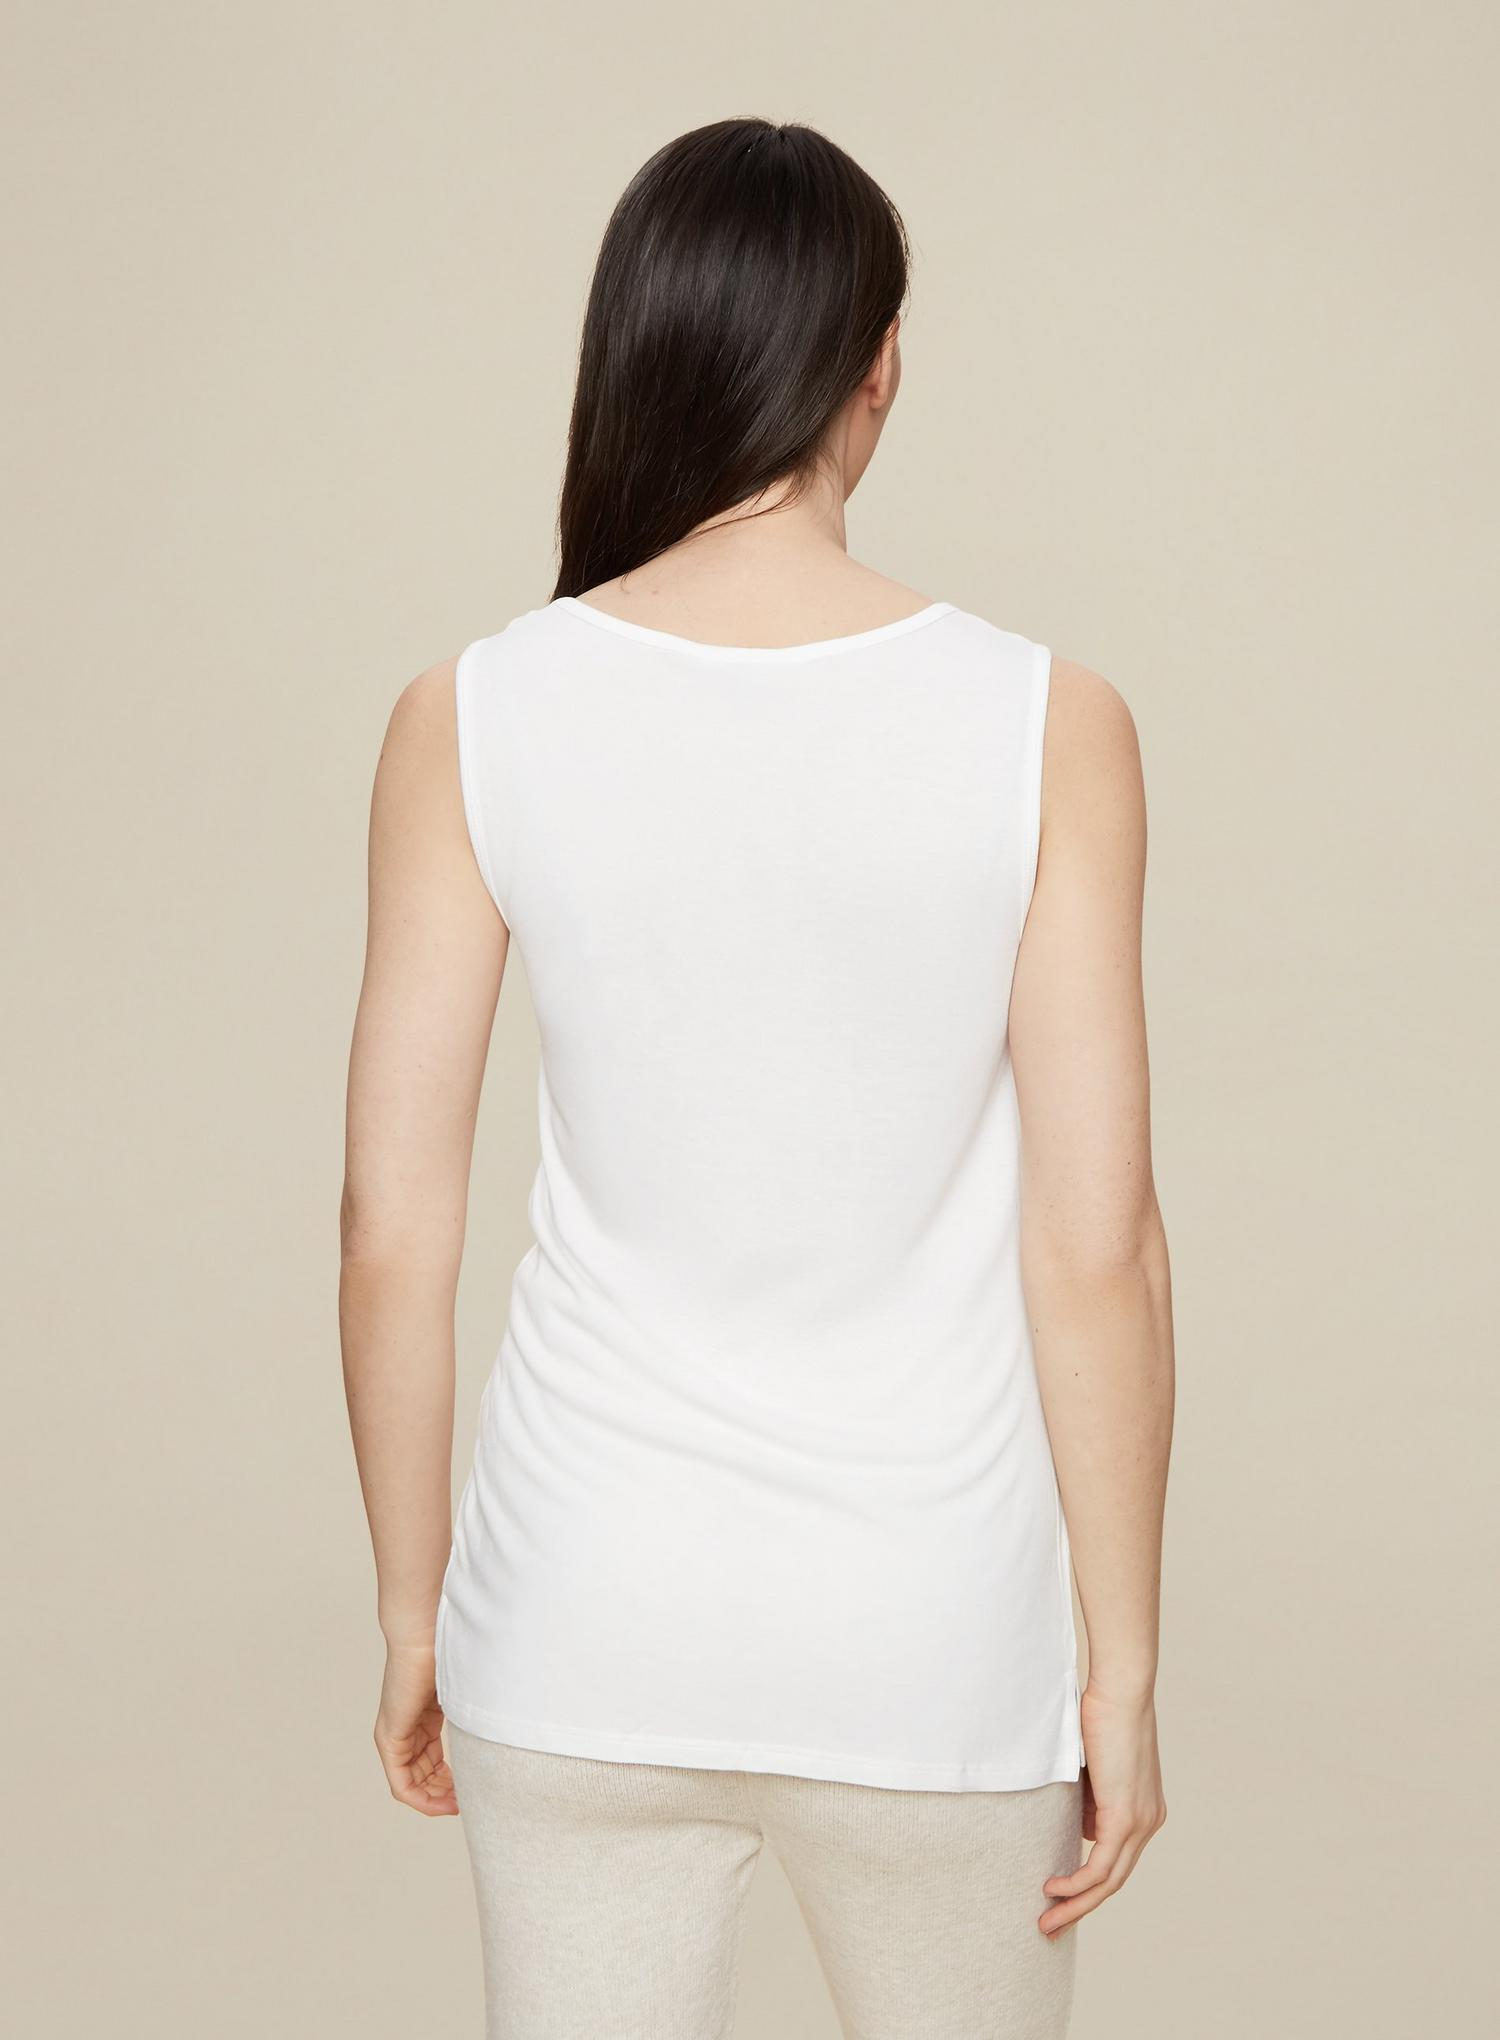 173 Tall White Vest Top image number 3